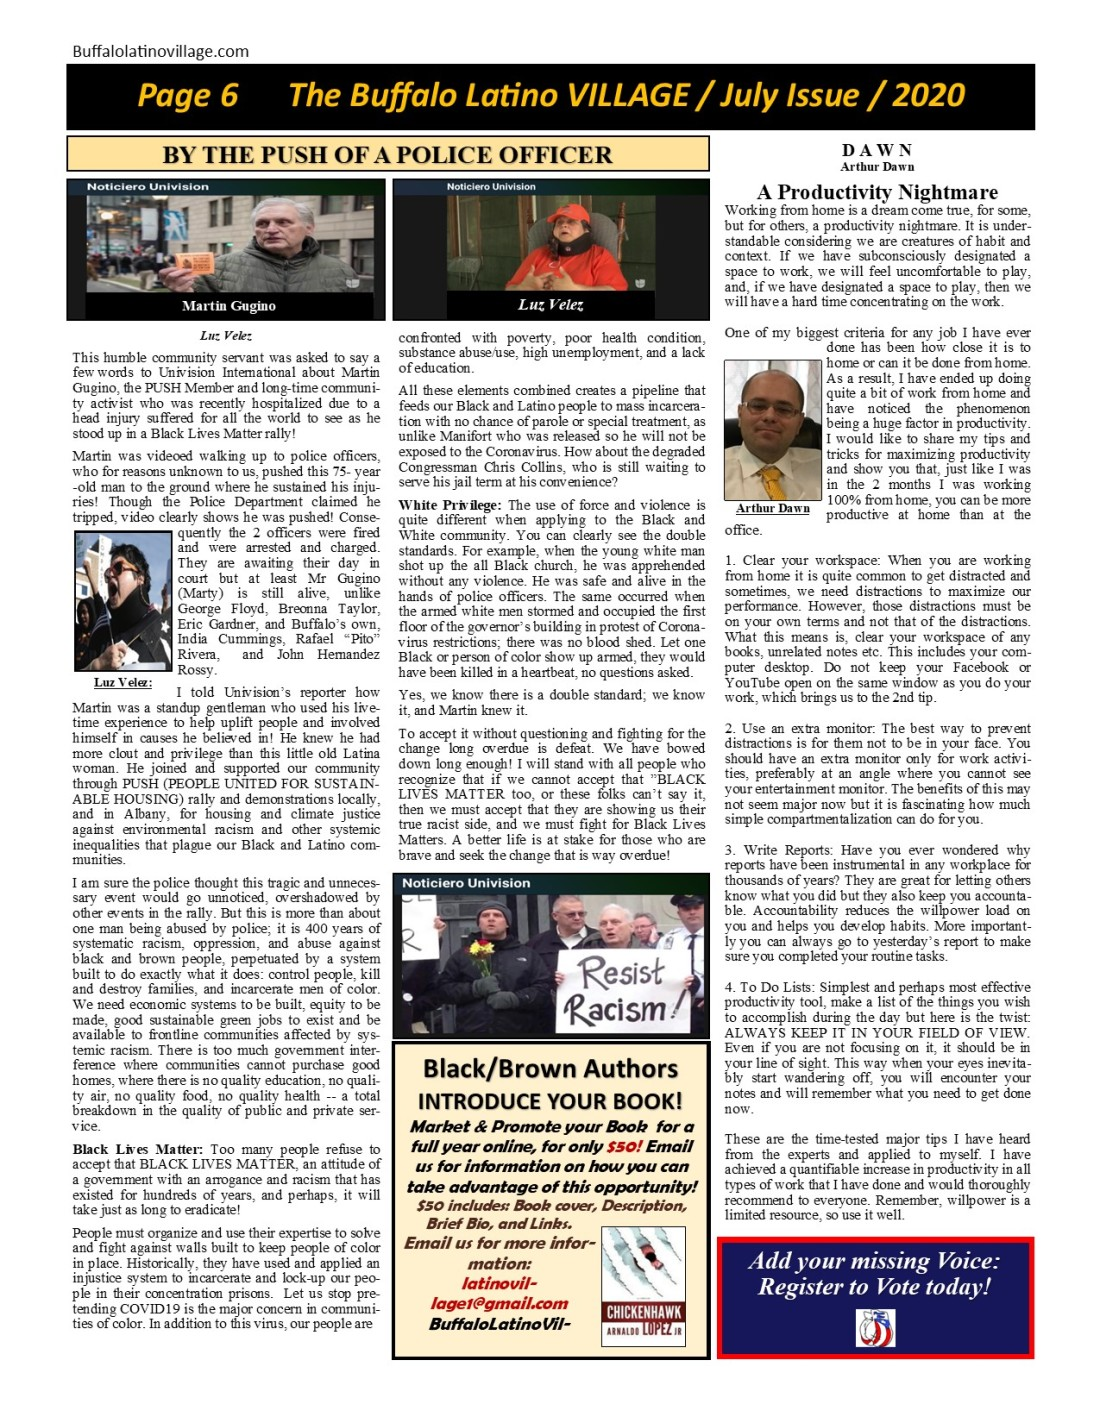 July 2020 Page 6